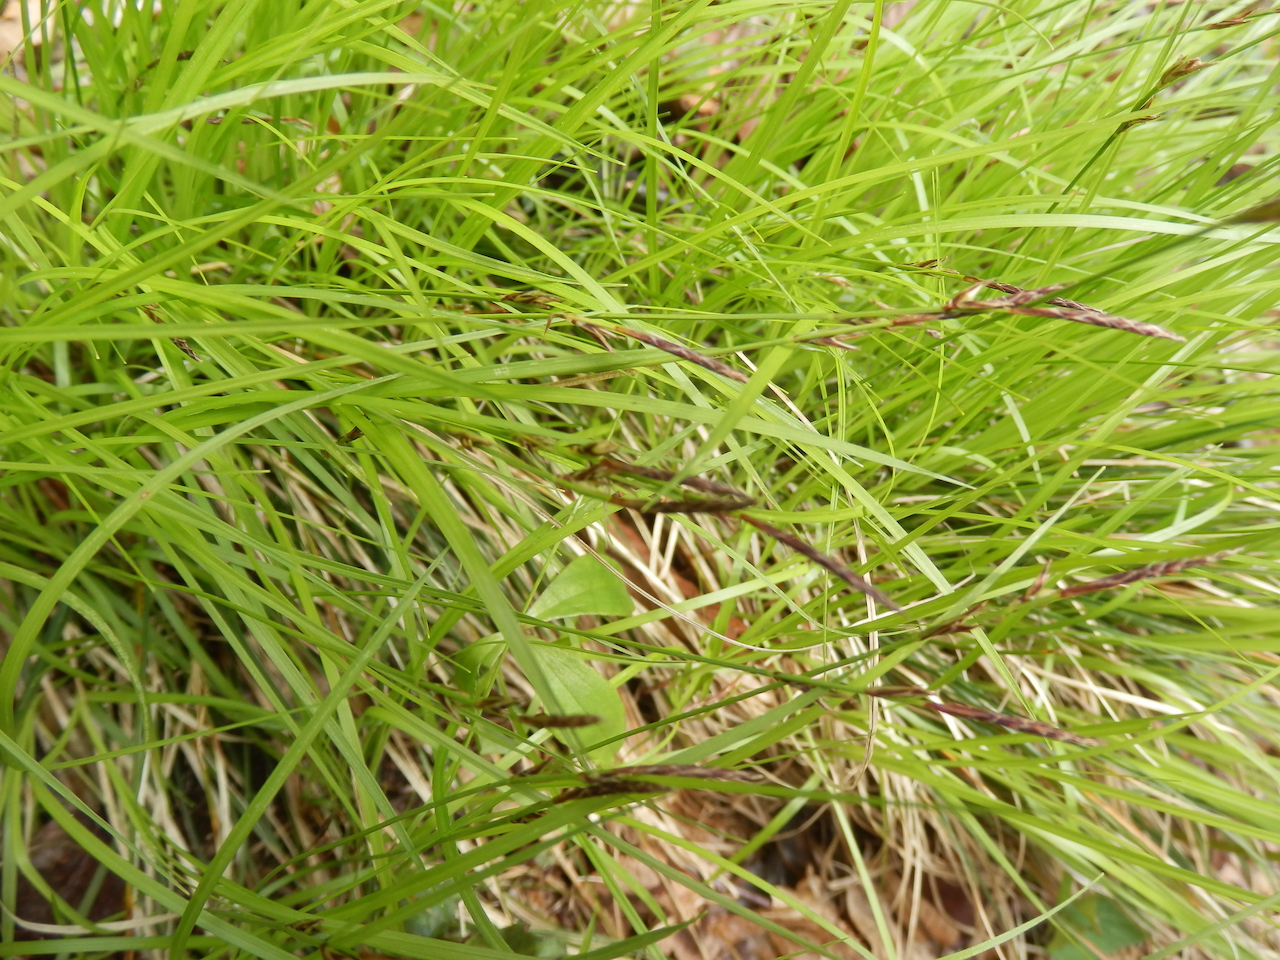 The Scientific Name is Carex pensylvanica. You will likely hear them called Pennsylvania Sedge. This picture shows the  of Carex pensylvanica